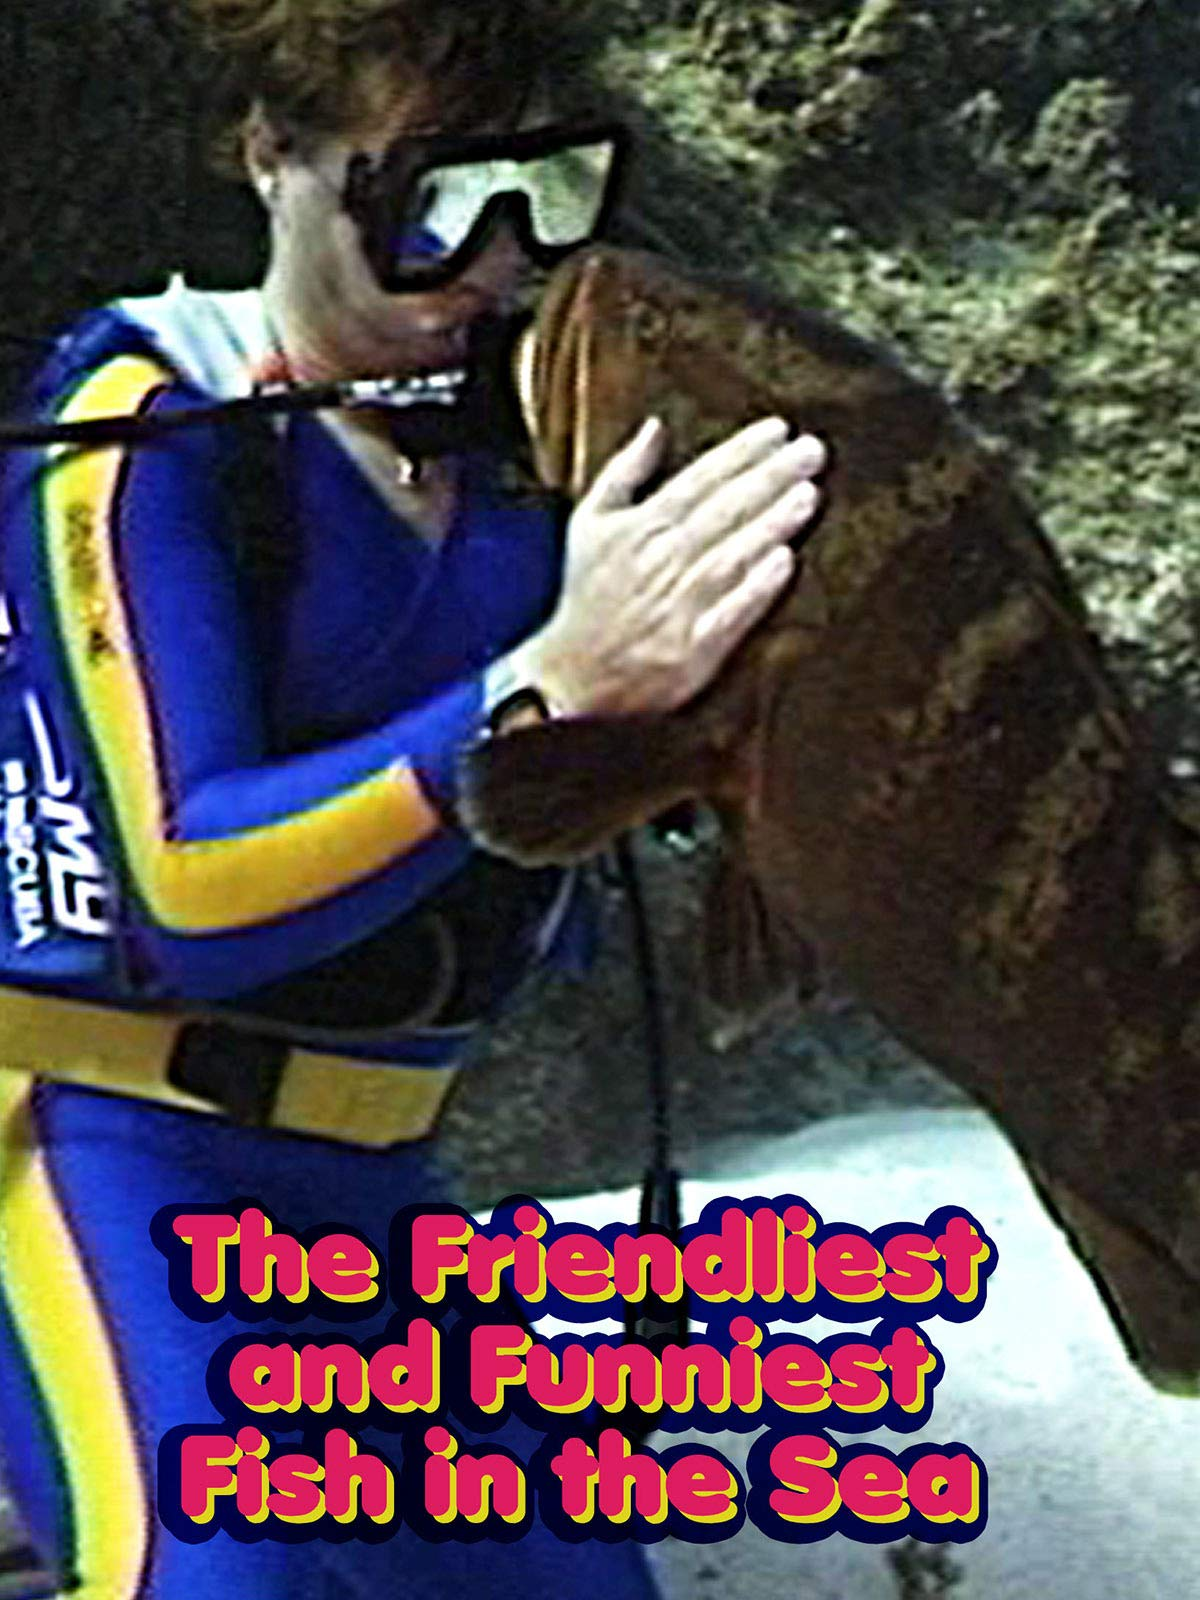 The Friendliest and Funniest Fish in the Sea